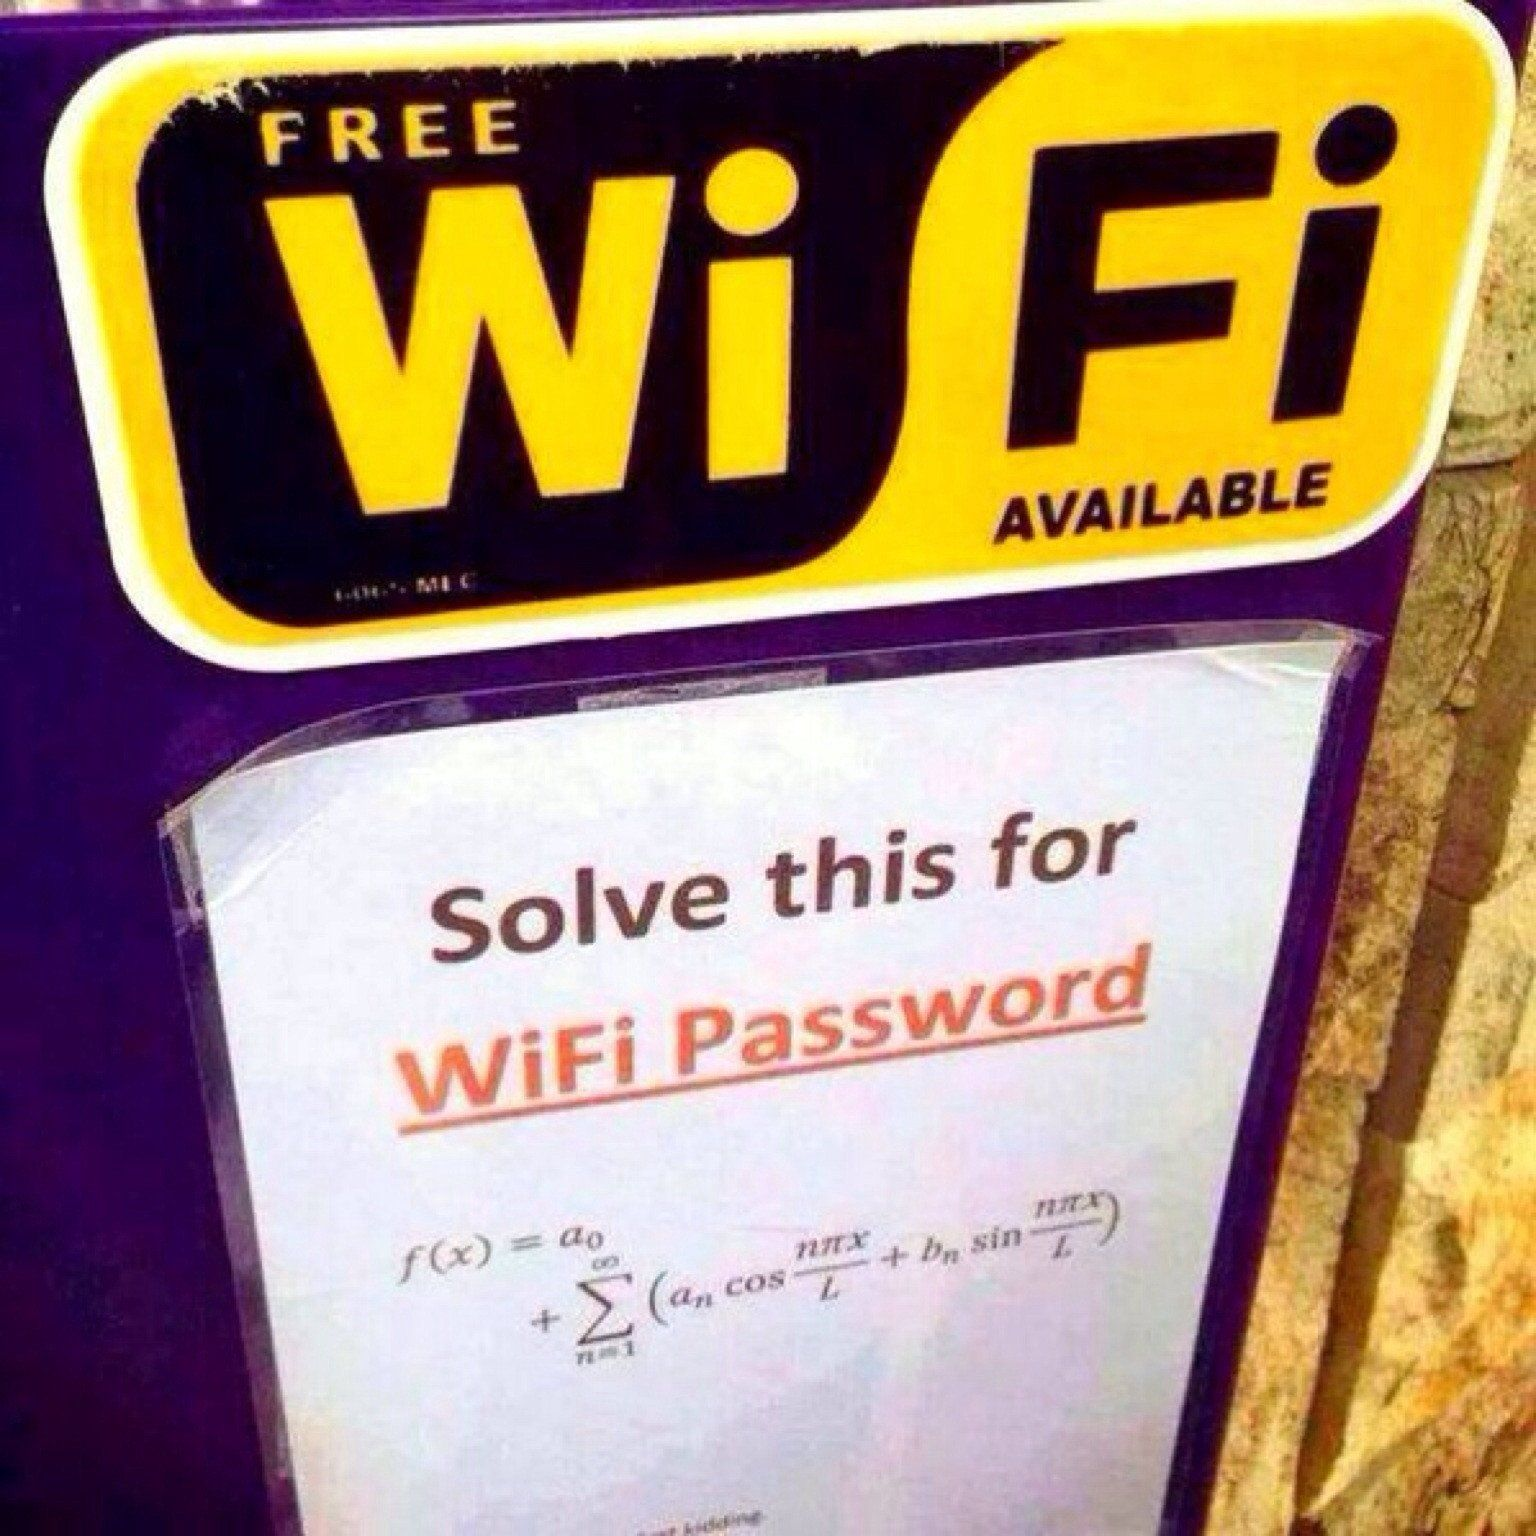 WorldAndScience: Free wifi... https://t.co/d7UF6d4DRv